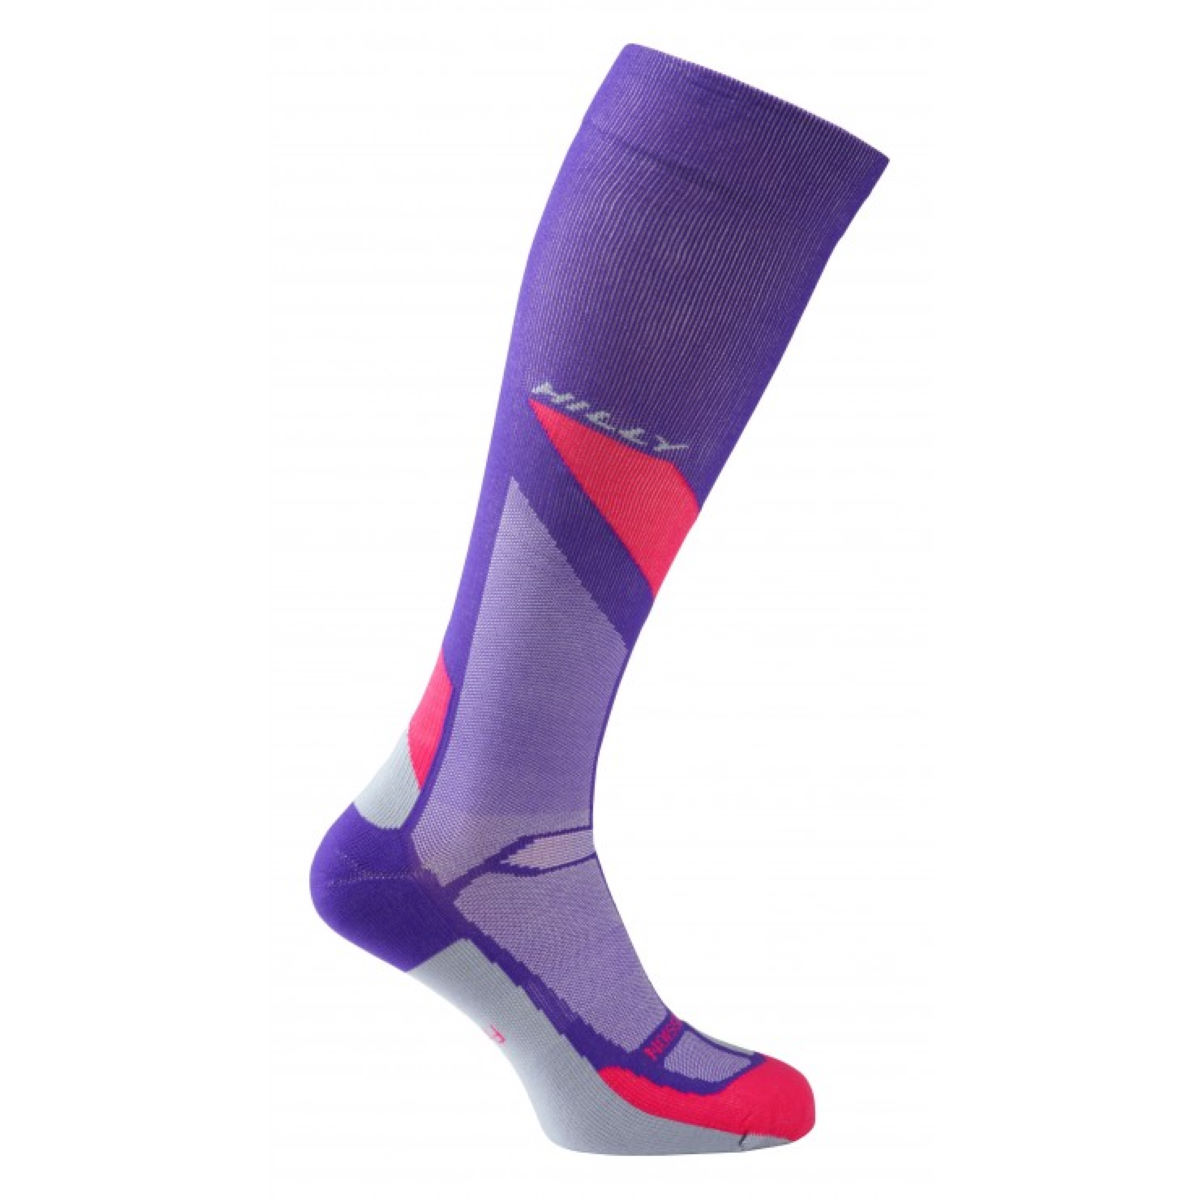 Image of Chaussettes Femme Hilly Marathon Fresh Compression - M Purple/Pink